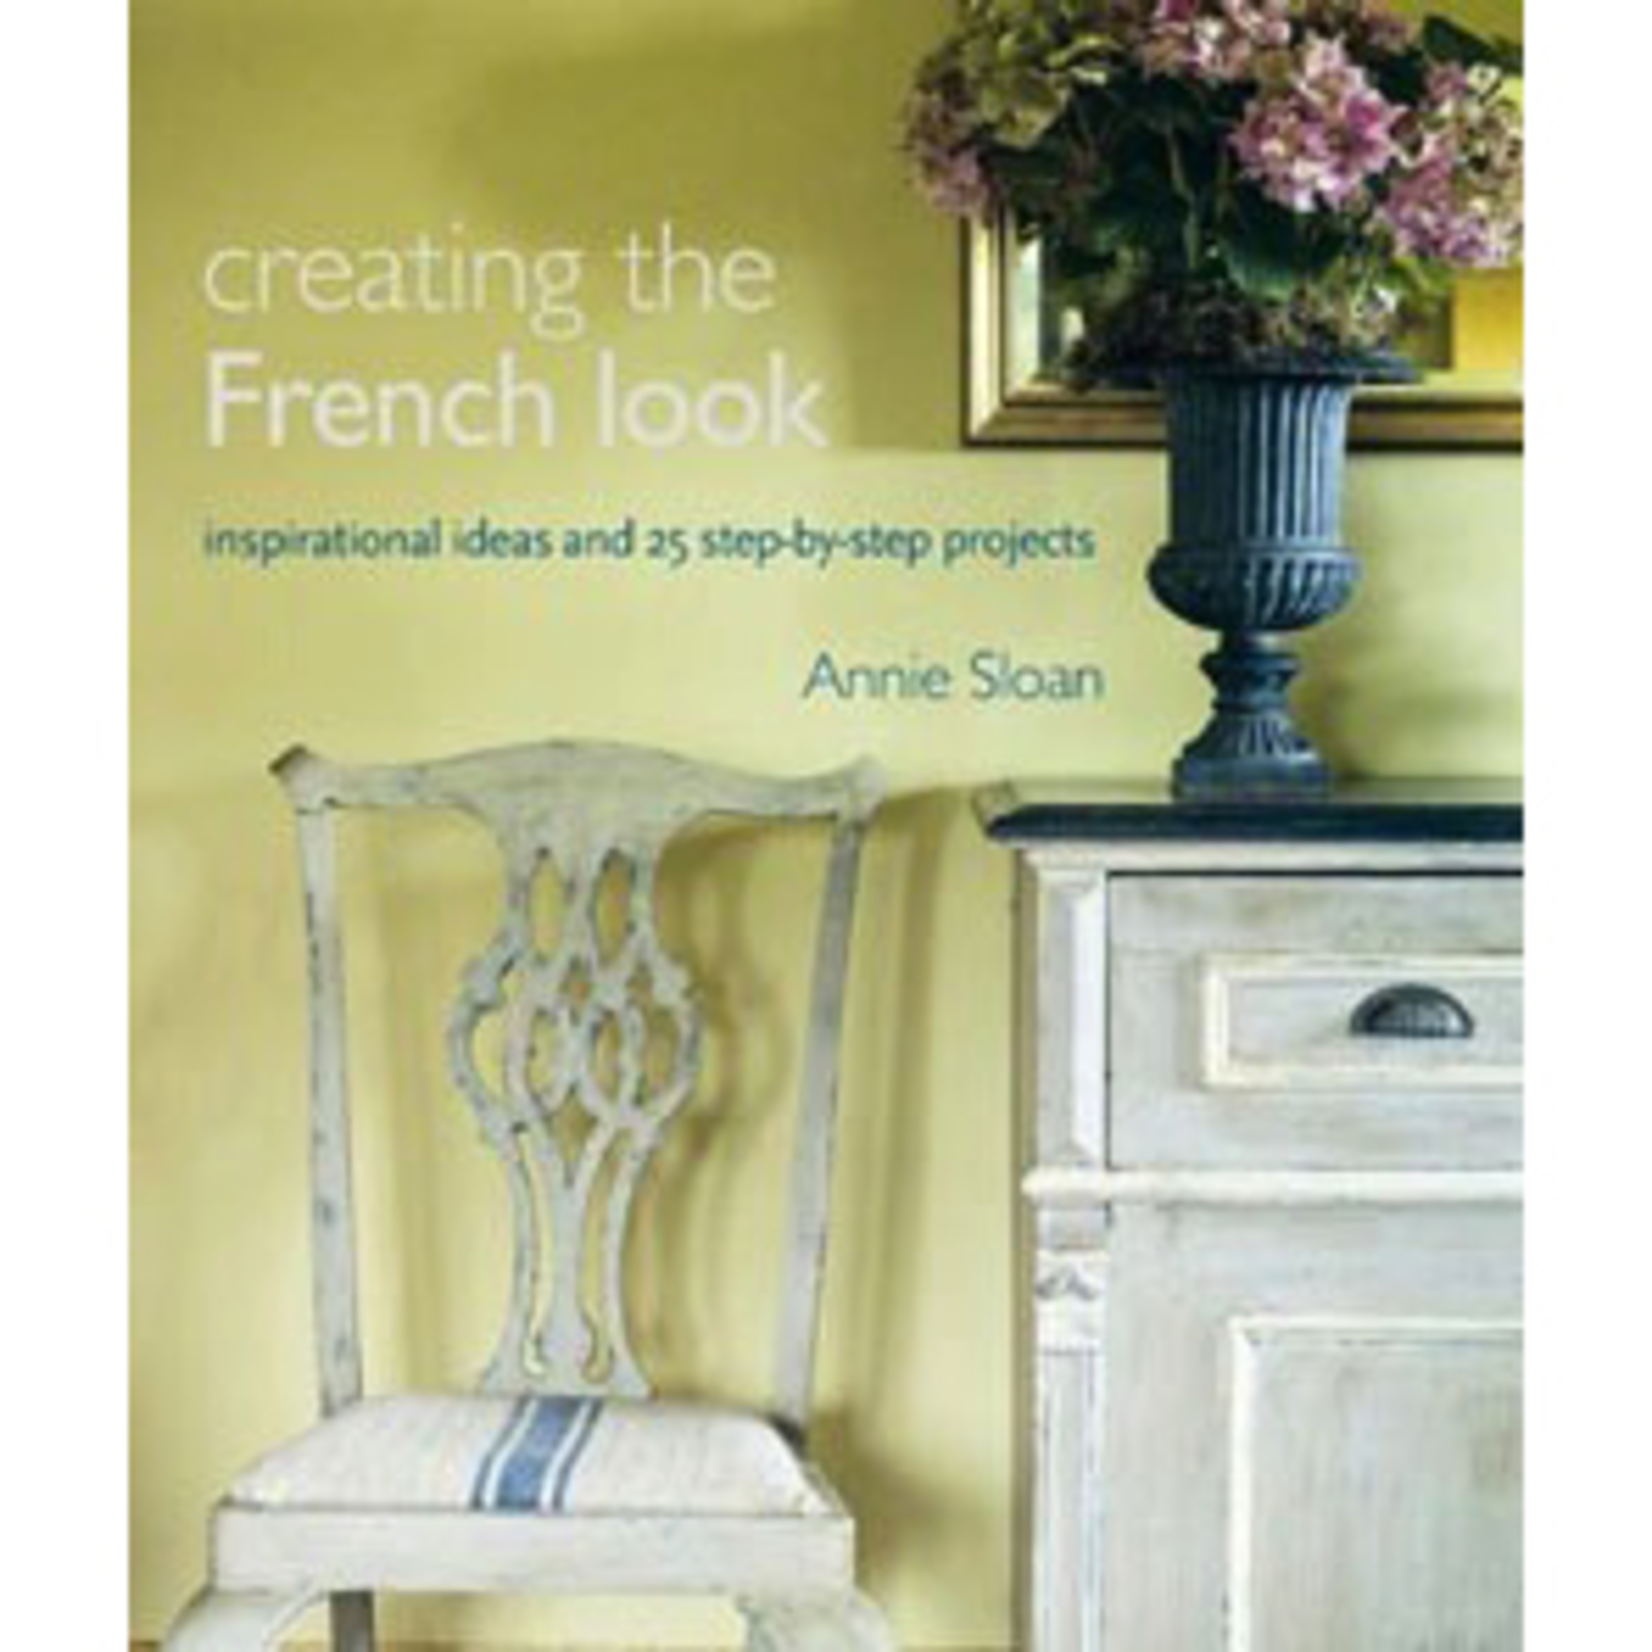 Annie Sloan Annie Sloan Creating the French Look book